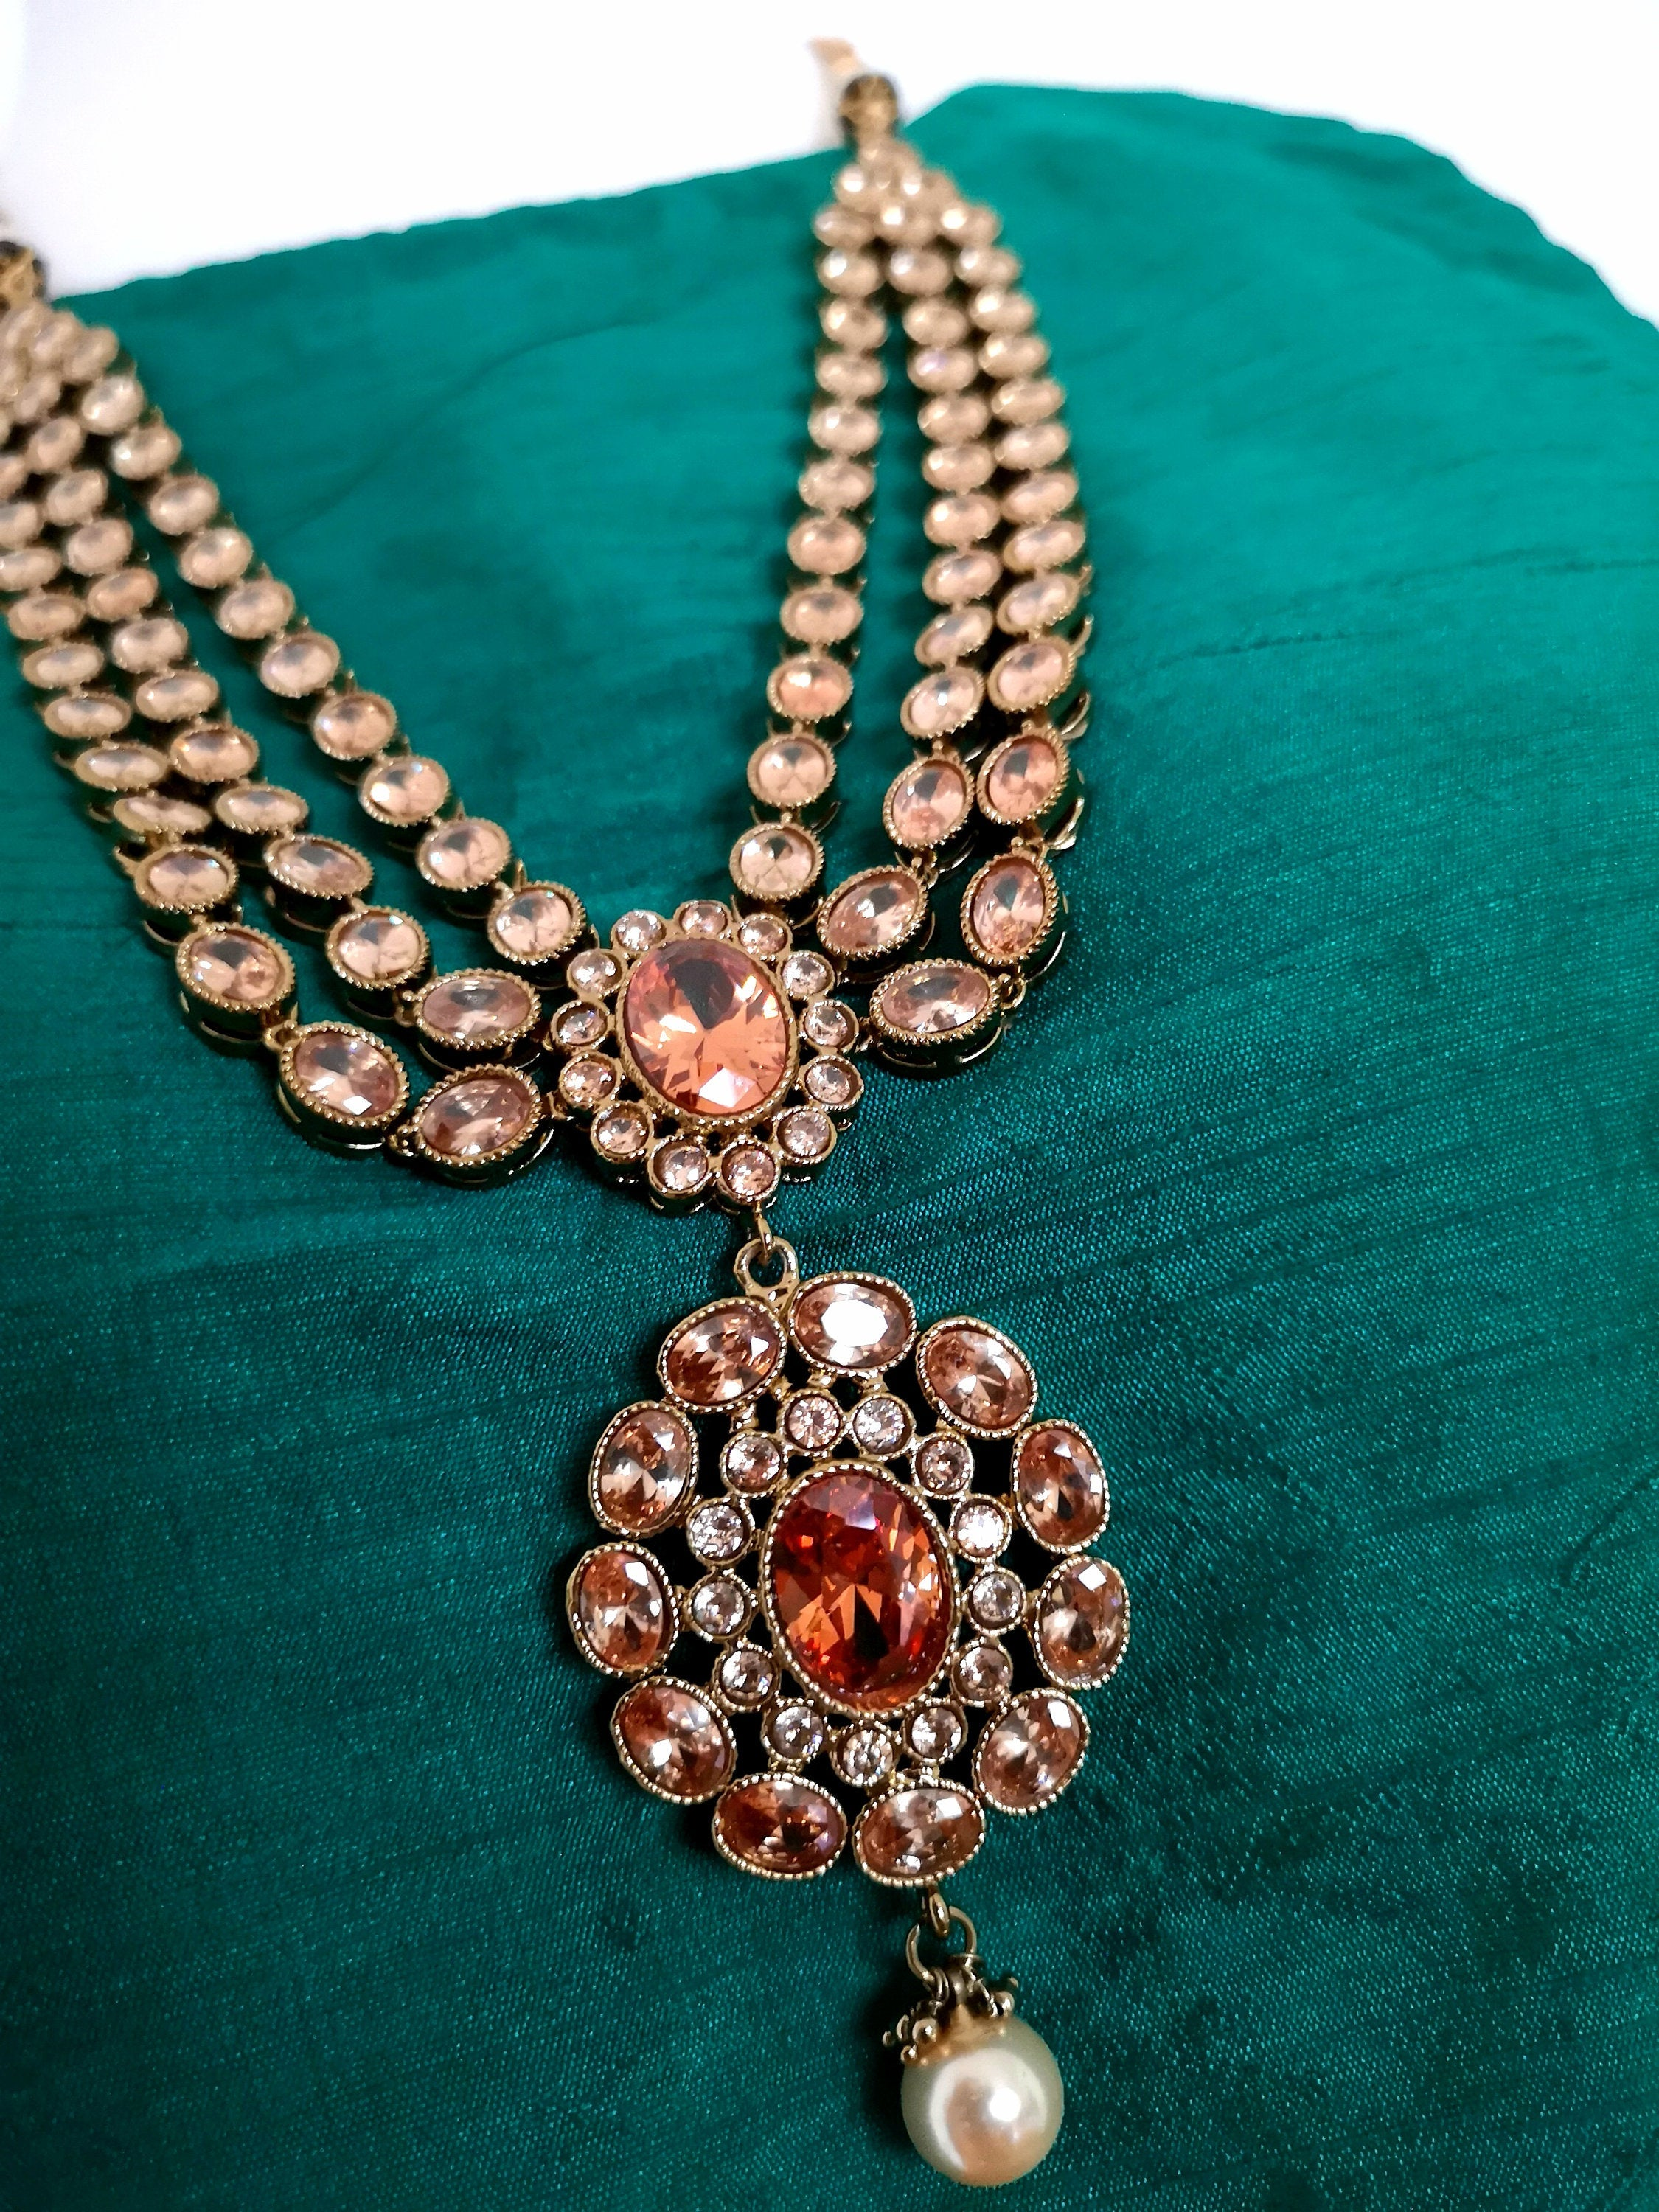 Indian polki 3 layer with pearl (mehendi-plated) necklace with mangtikka and earrings set Indian Pakistani Bride Bridal Bridesmaid - Pink Chunari